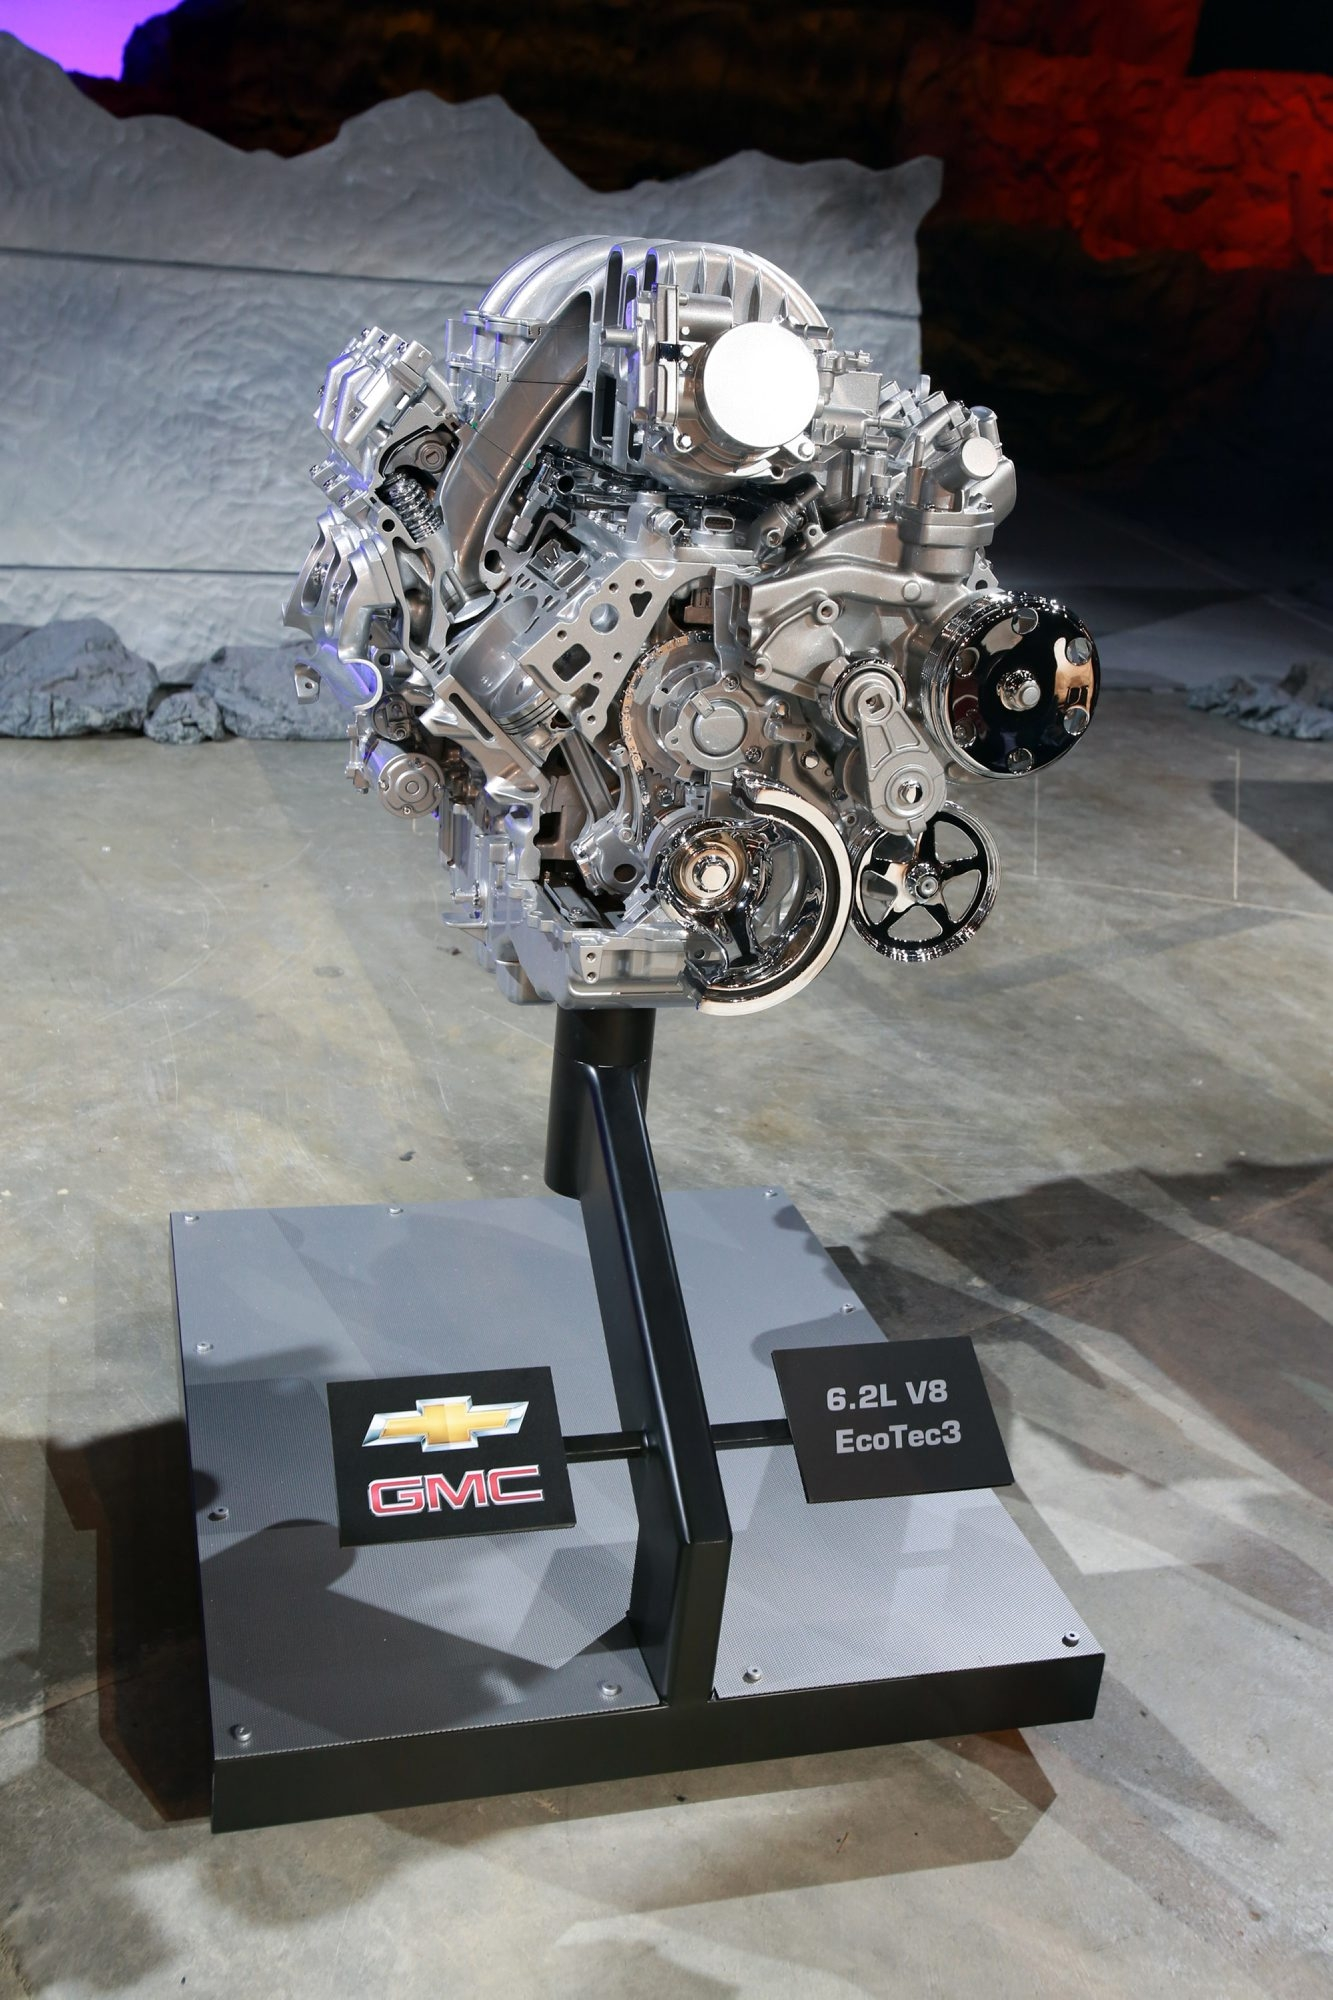 The 6.2L V8 EcoTec3 engine of the General Motors Co. (GM) 2014 GMC Sierra pickup truck is displayed during the vehicle's unveiling at an event in Pontiac, Michigan, U.S., on Thursday, Dec. 13, 2012. Even with the recent cloud of high existing truck inventories, the new Chevrolet Silverado and GMC Sierra pickups hold the promise of giving GMís investors, the U.S. government included, a long awaited boost. Photographer: Fabrizio Costantini/Bloomberg